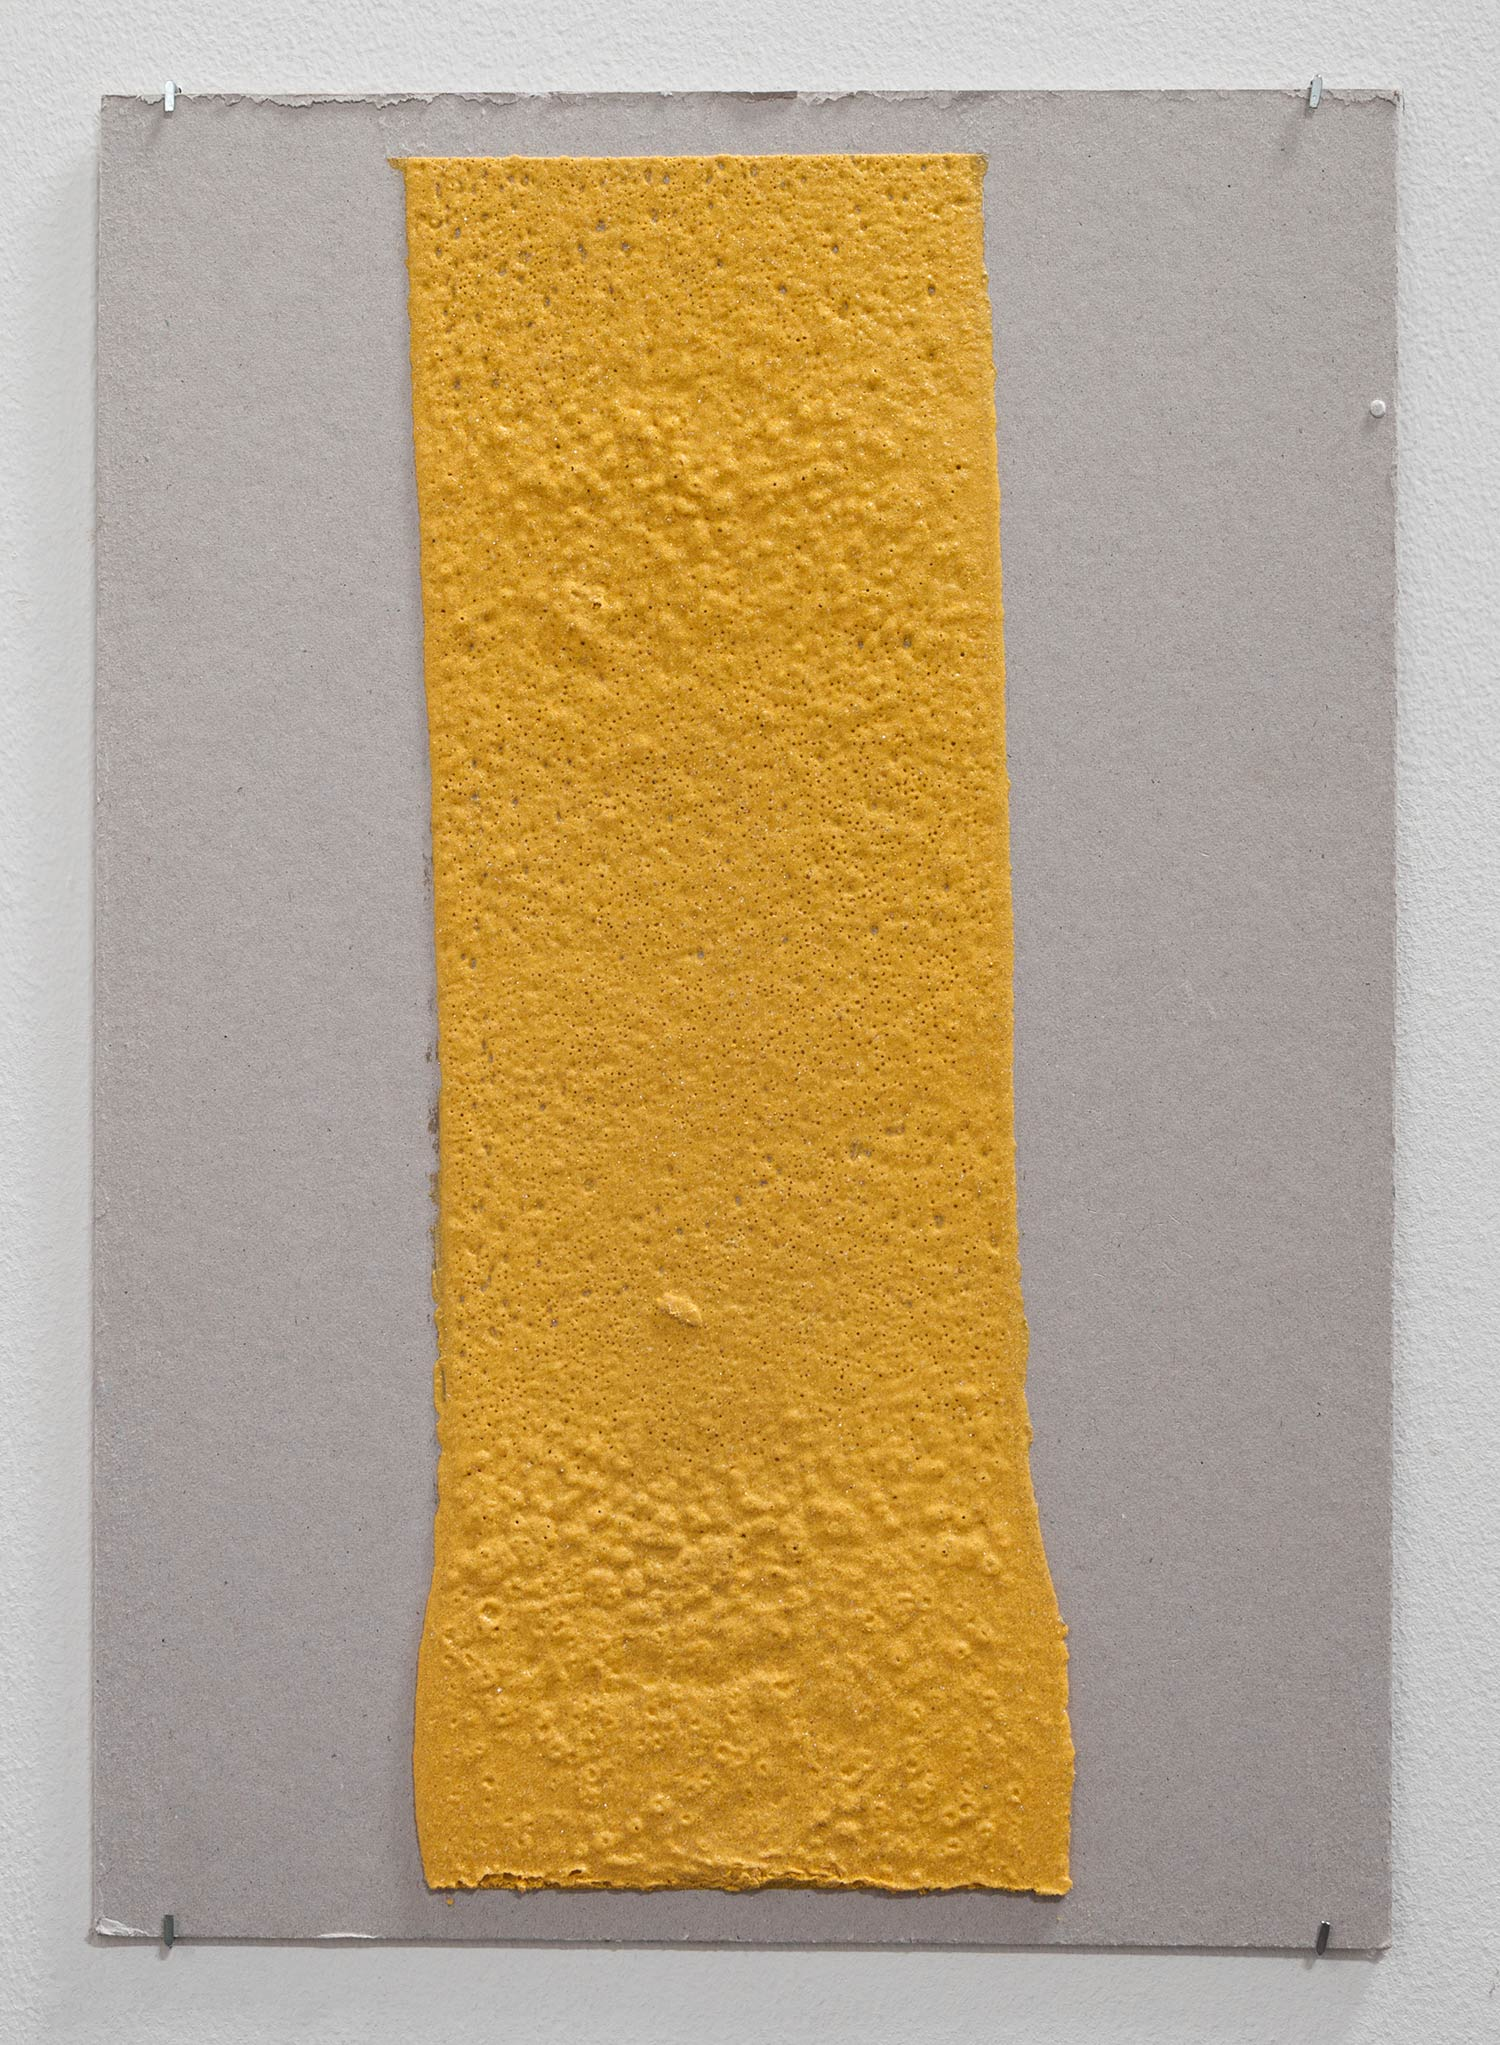 150mm (W), 1.5mm (T), Yellow, Random mark, hand marking, Al Barsha South, Unnamed street,  2017  Thermoplastic paint and reflective glass particles on grey board  35 x 50 cm